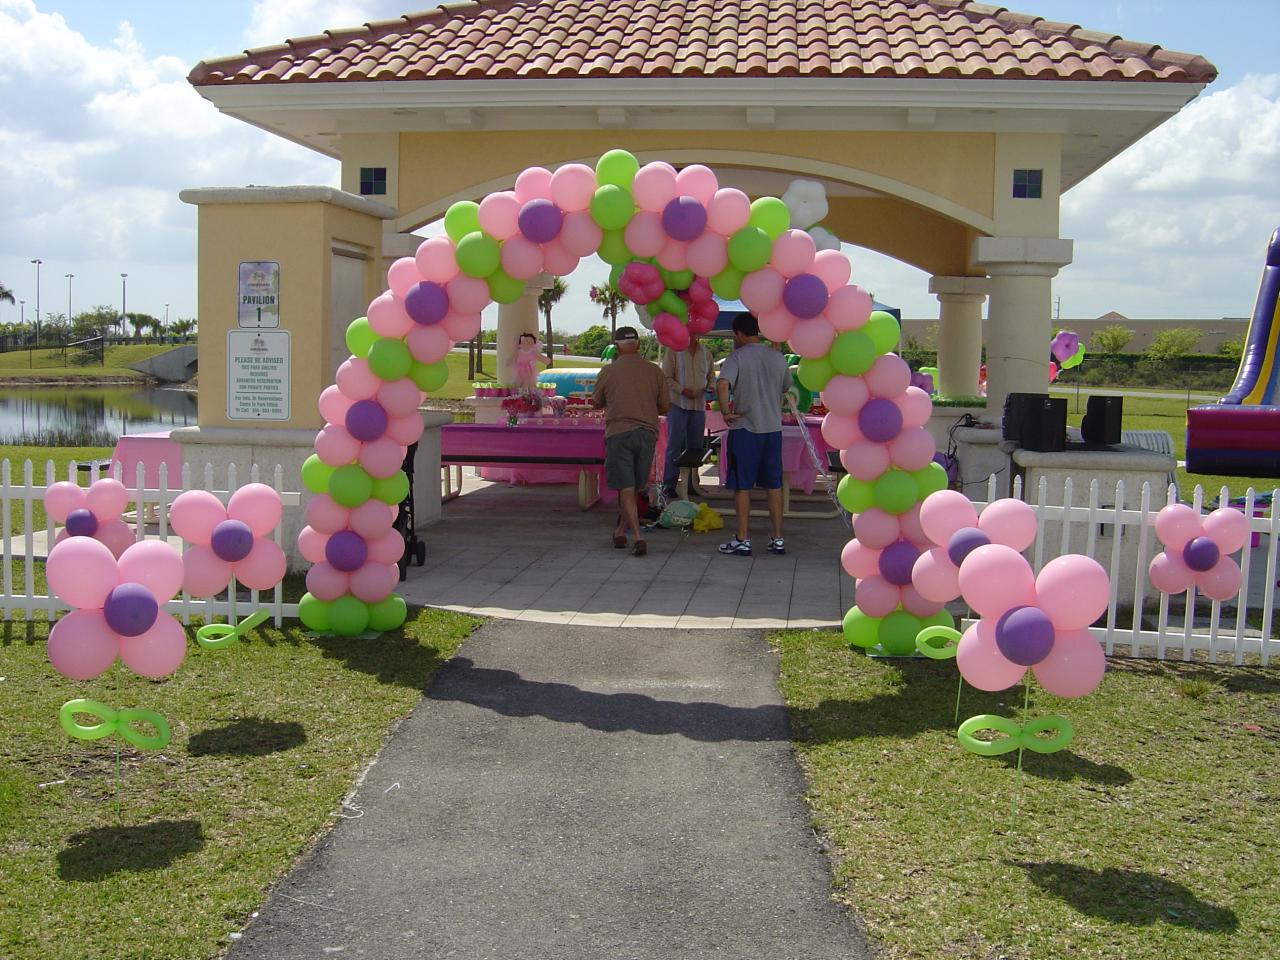 Balloon ideas on pinterest balloons balloon columns and for Balloon arch decoration ideas